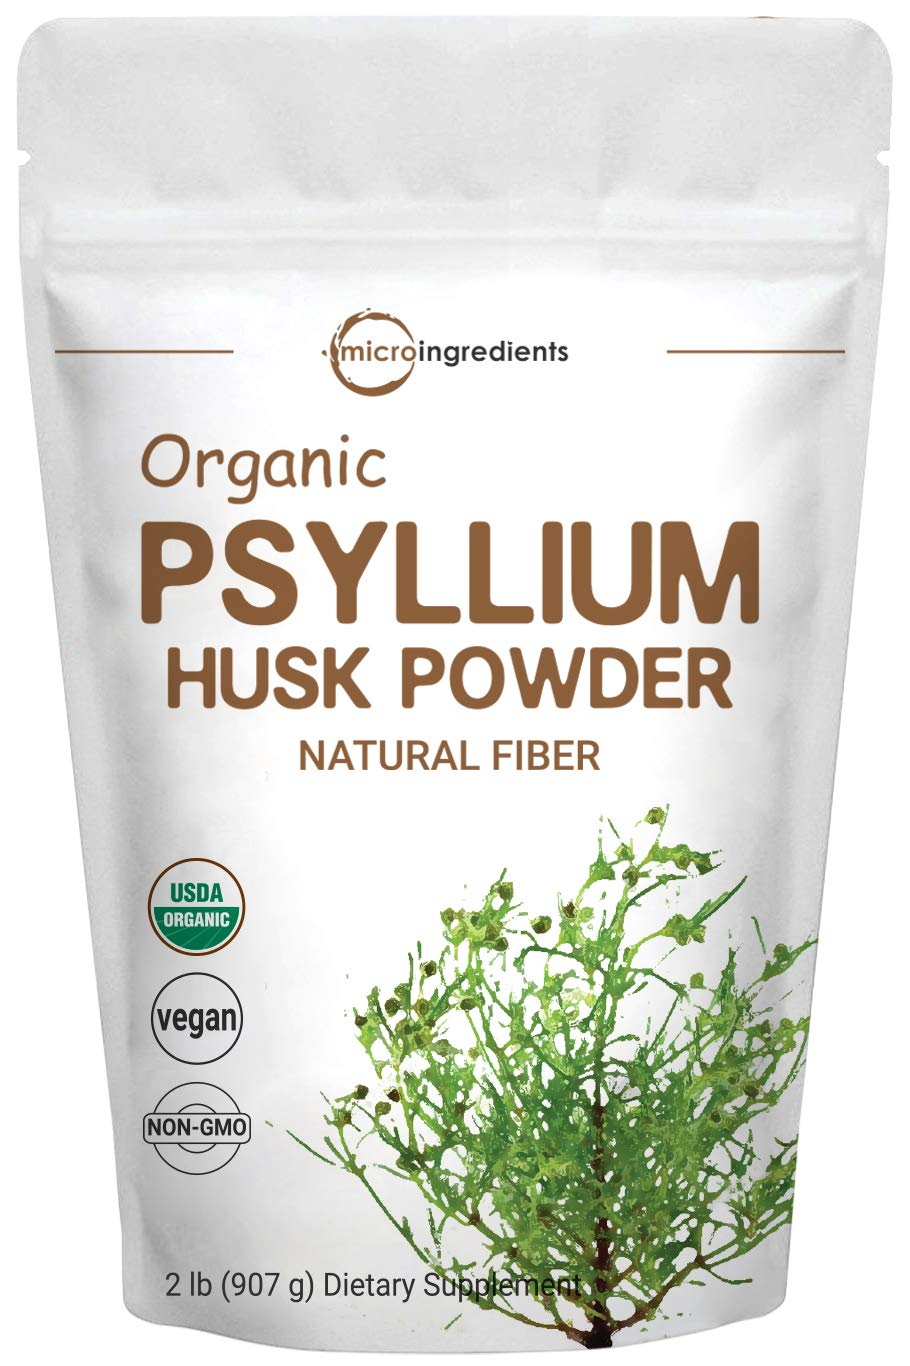 Organic Psyllium Husk Powder, 2 Pound (32 Ounce), Natural Fiber, Perfect for Baking, Smoothie and Beverage, No GMOs and Vegan Friendly by Micro Ingredients